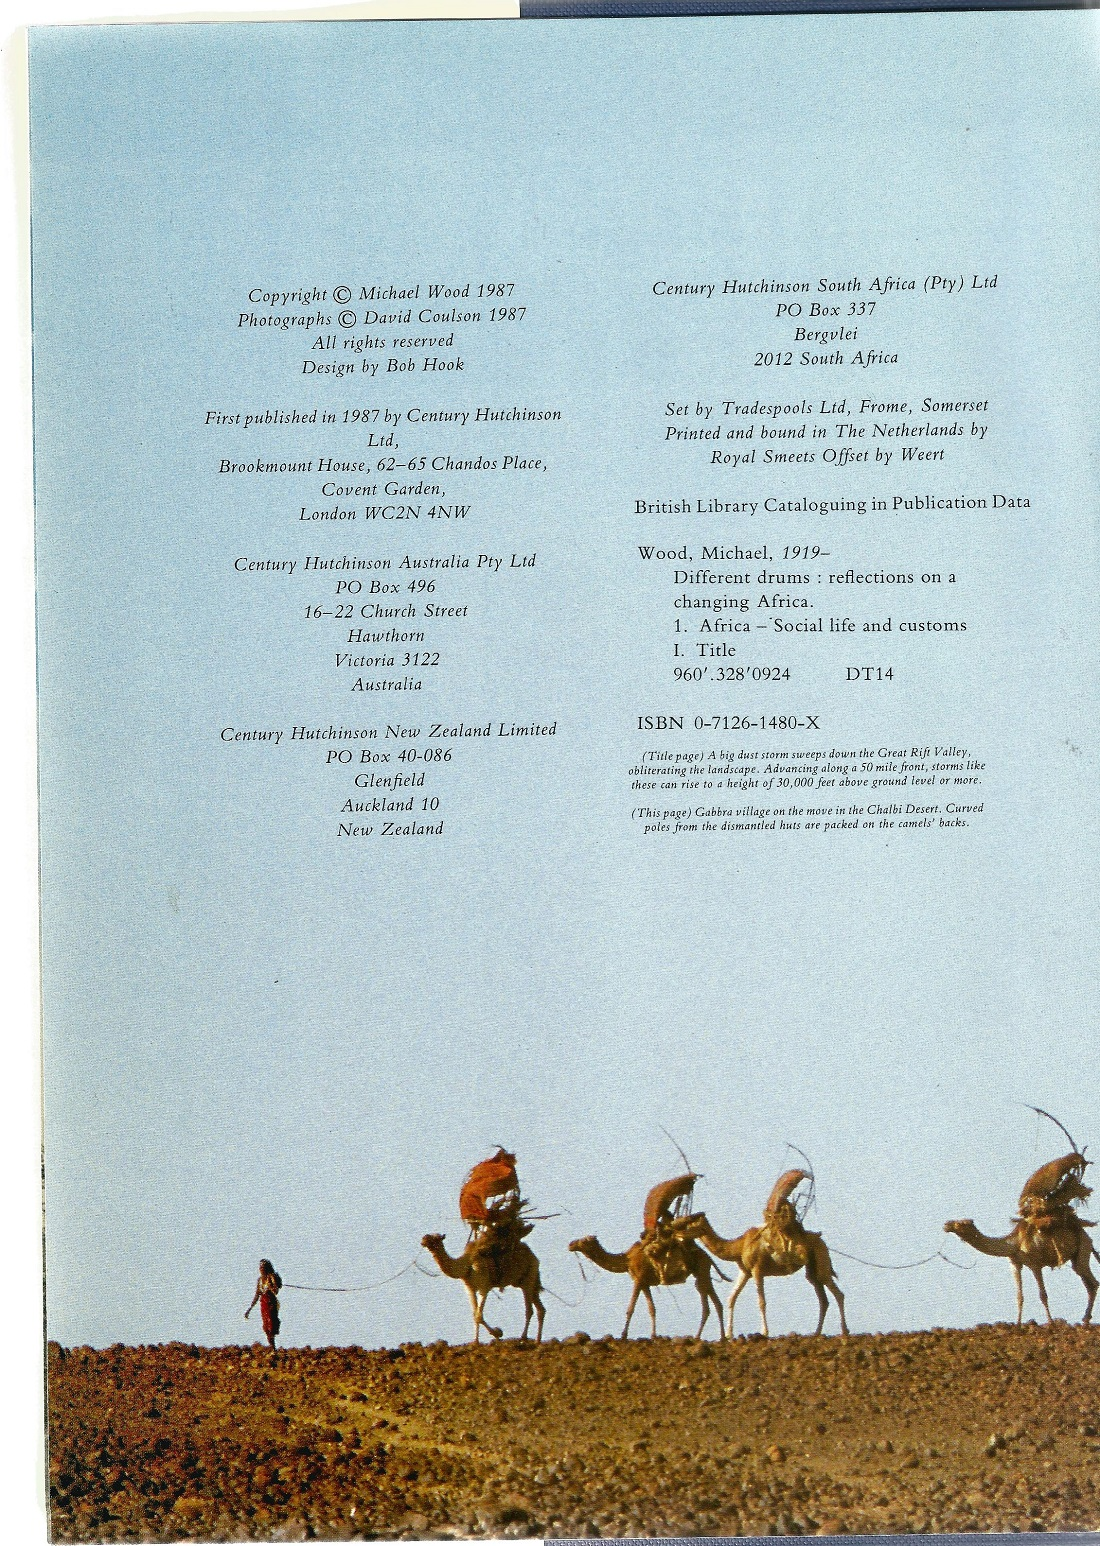 Signed Hardback Book Different Drums Reflections on a changing Africa by Michael Wood with photos by - Image 7 of 7